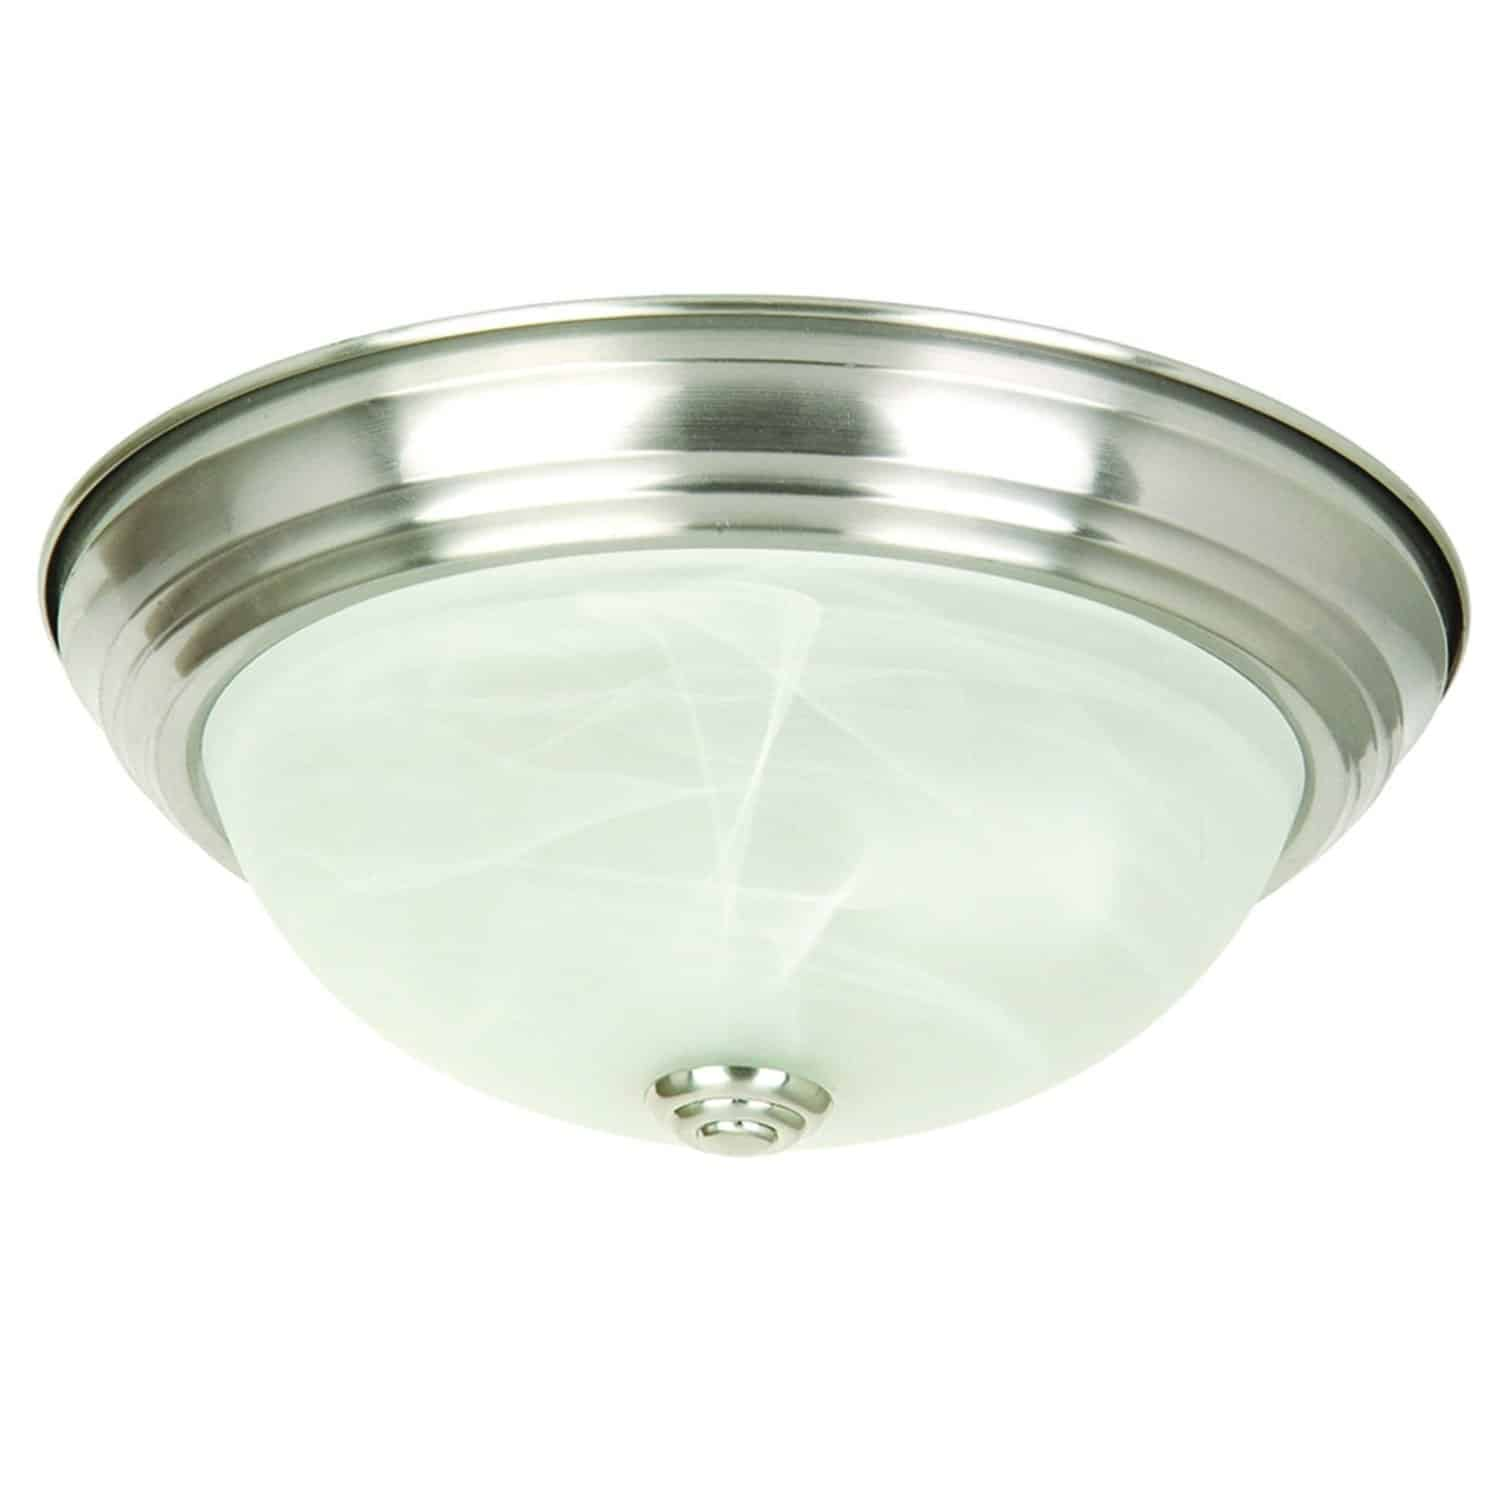 Top 10 best bathroom ceiling light fixtures reviews for Bathroom pendant lighting fixtures